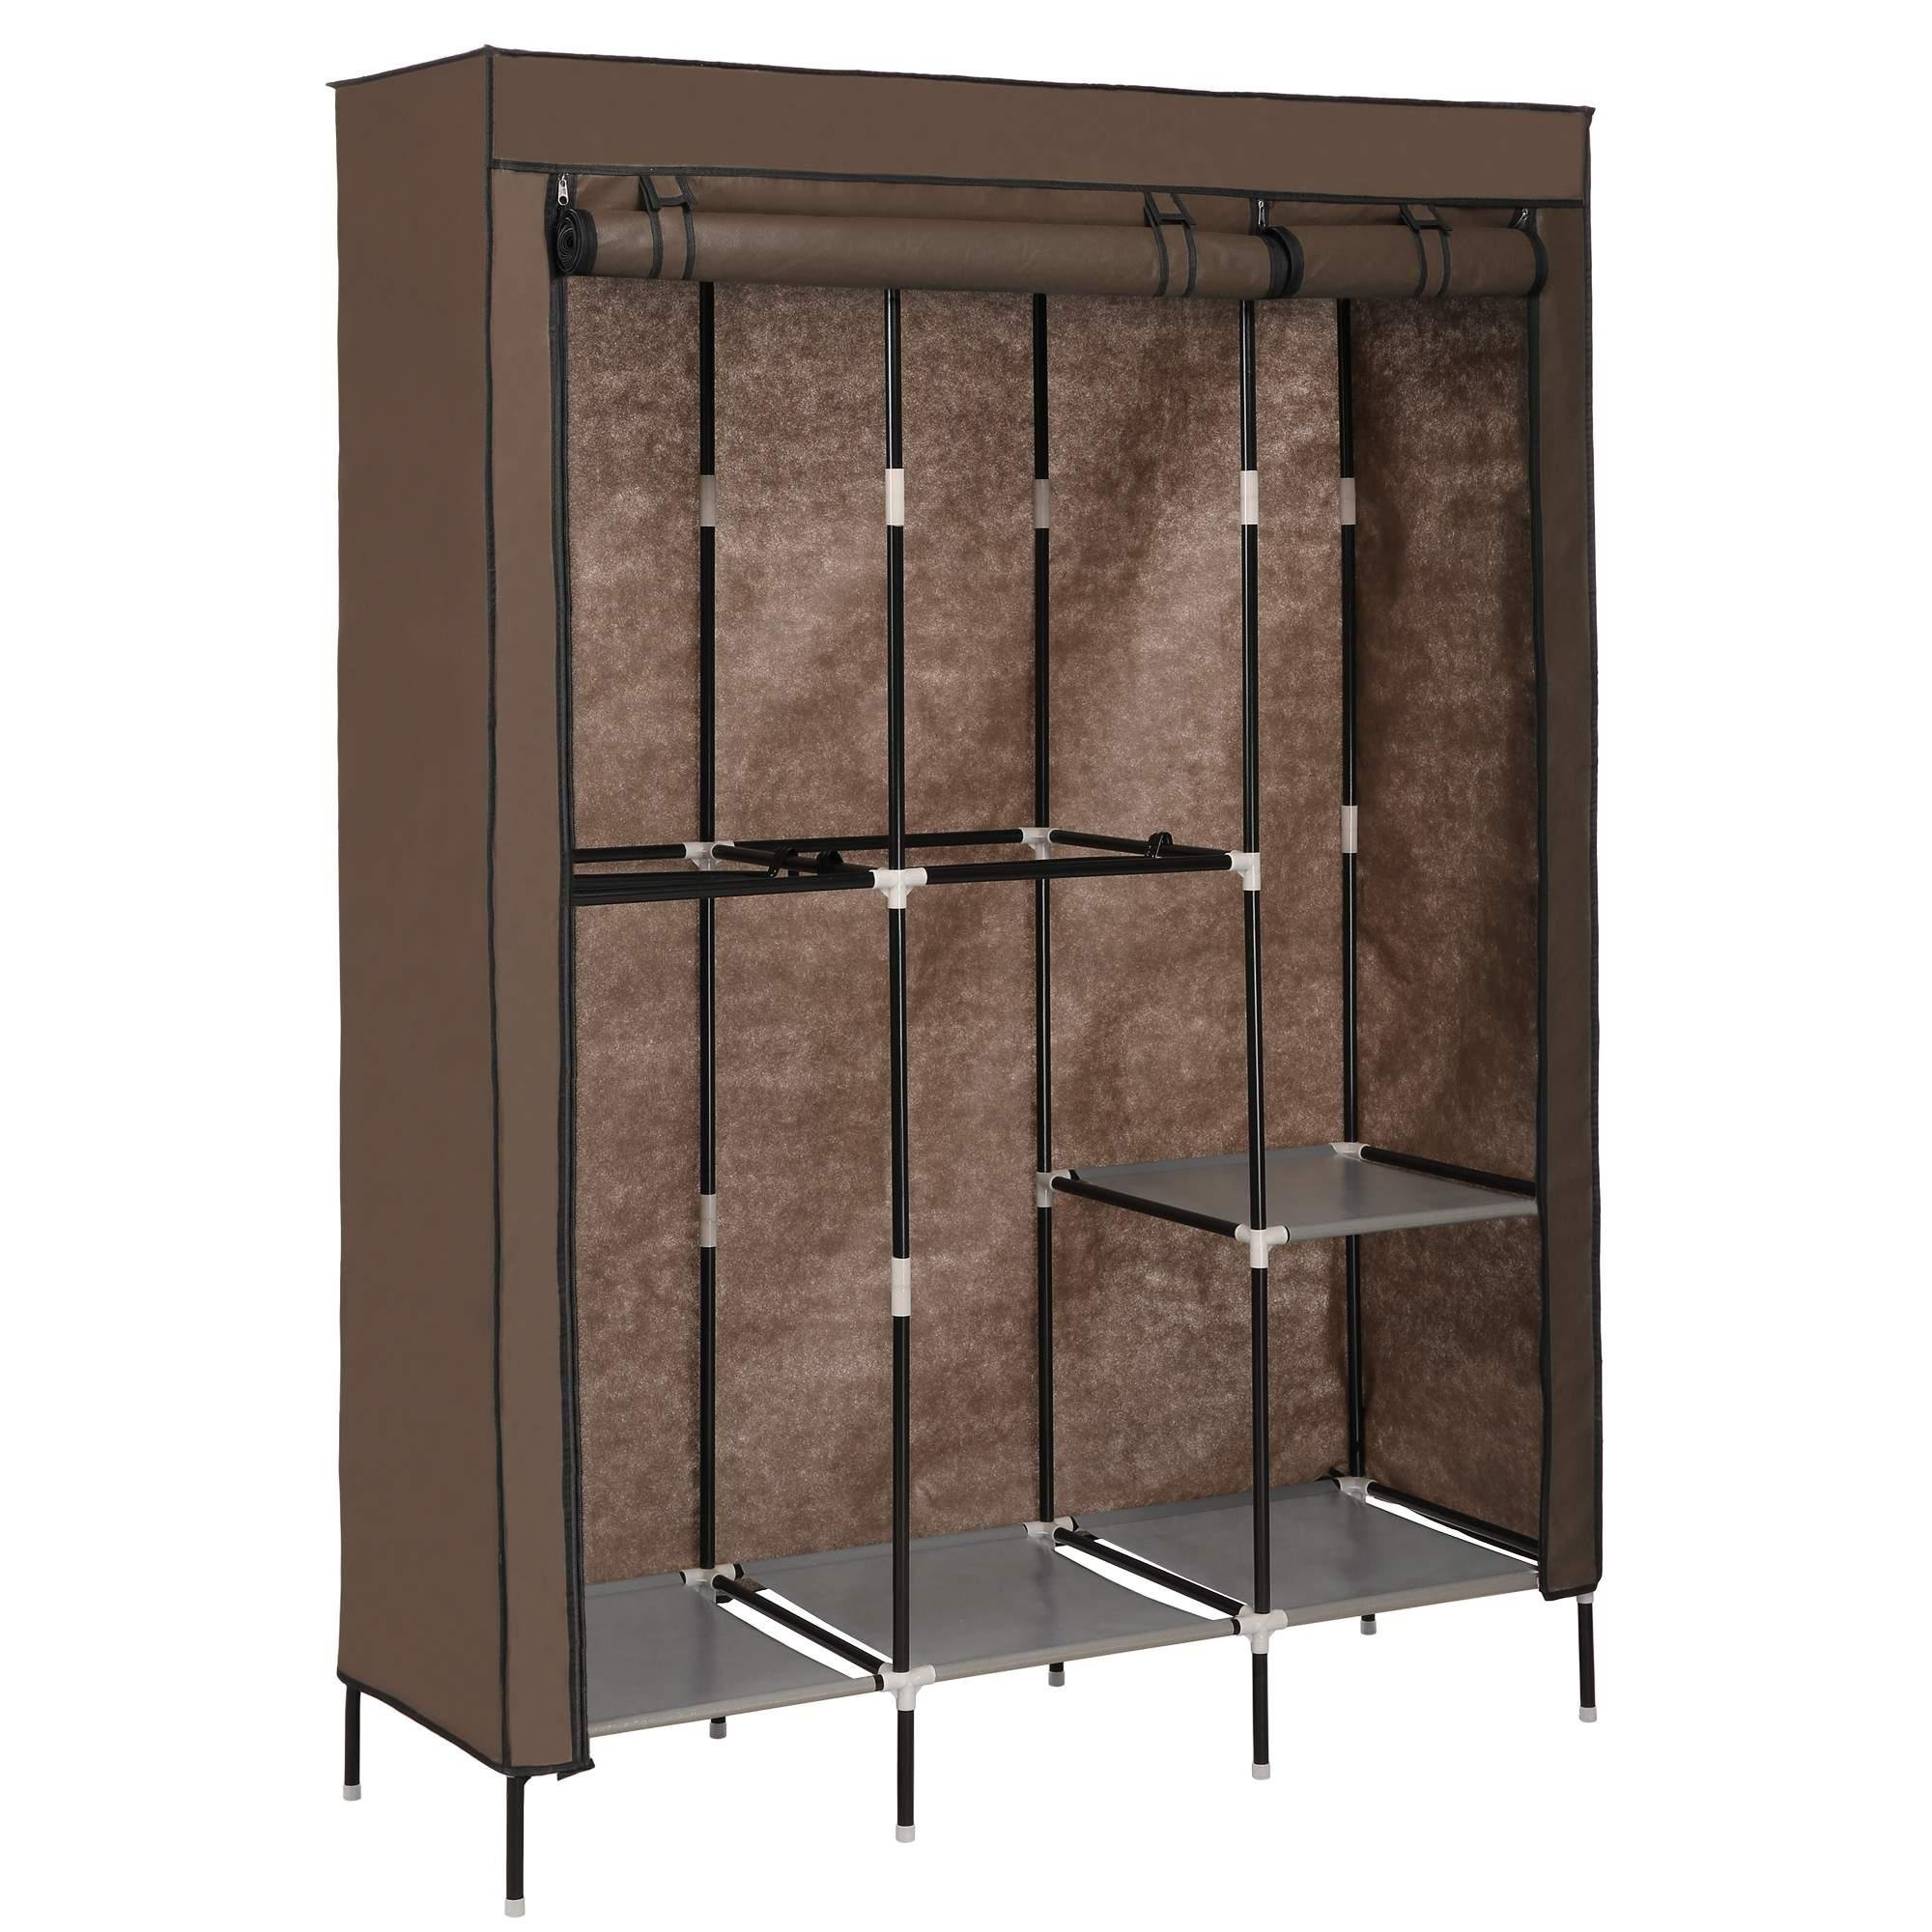 Pagacat Portable Wardrobe Closet, Fabric Clothes Armoire Storage Organizer with Rod and Shelves[US Stock] (Coffee)